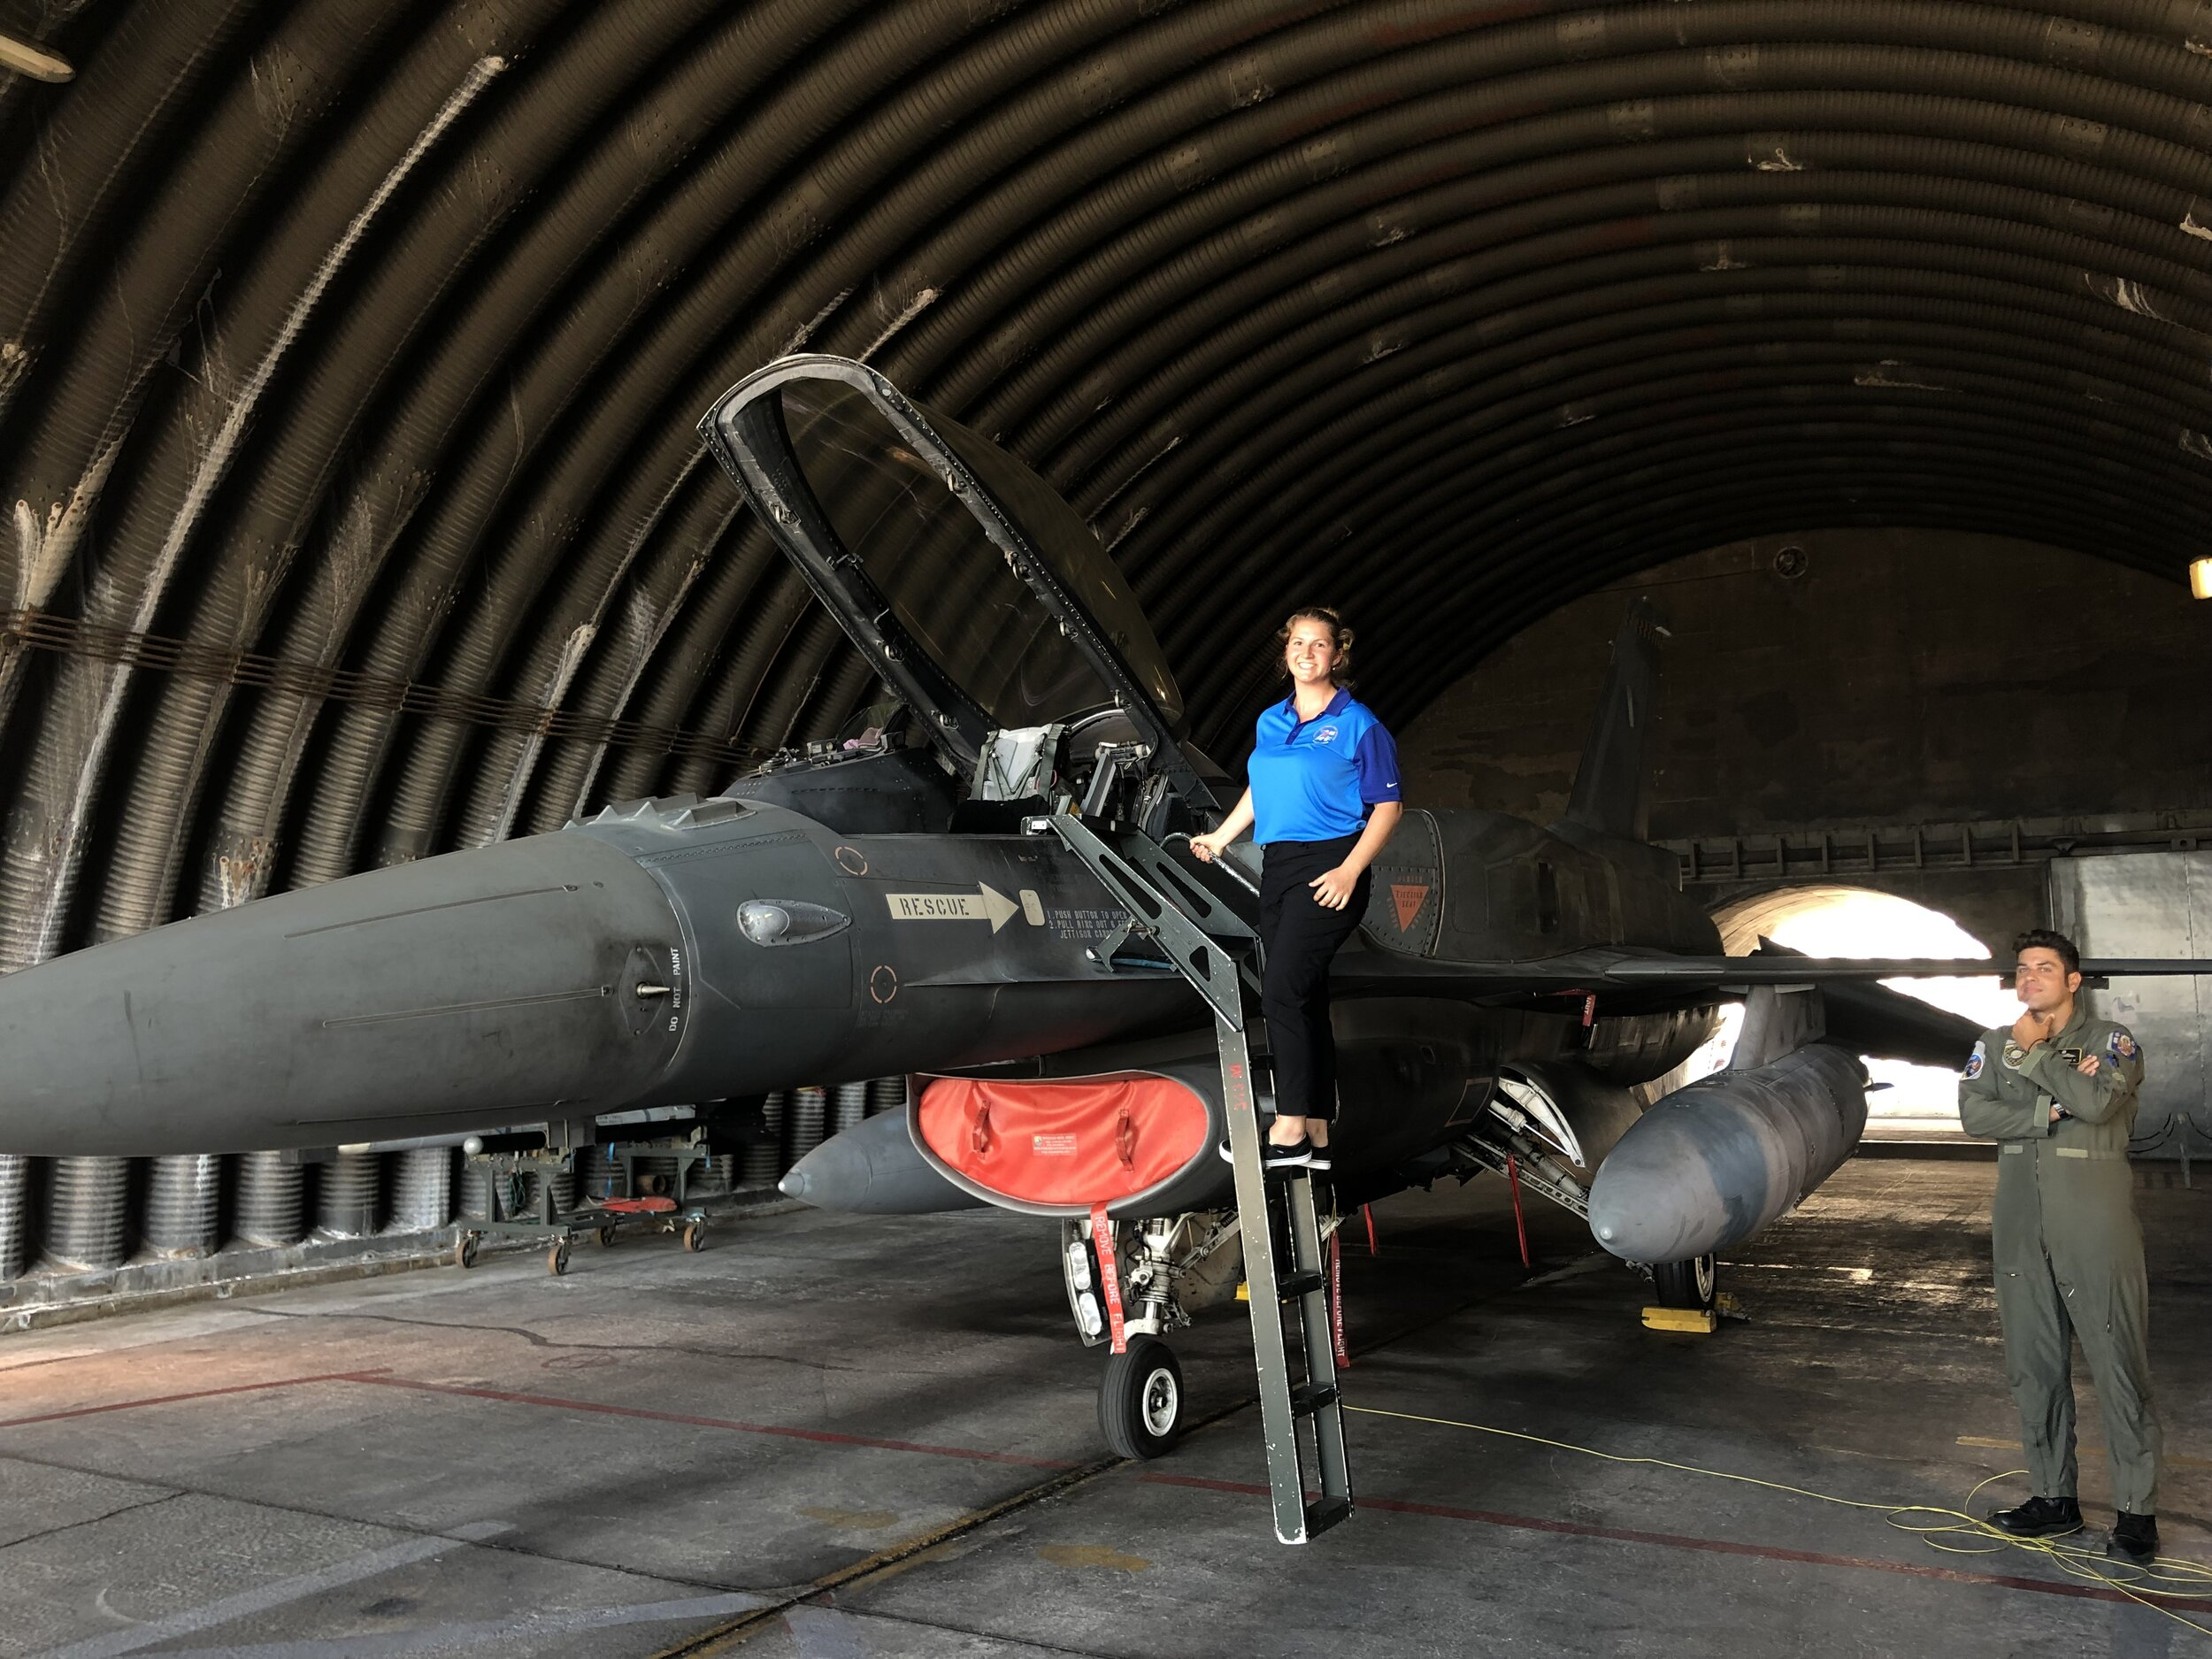 Student Sophia Yphantides posing with a F-16